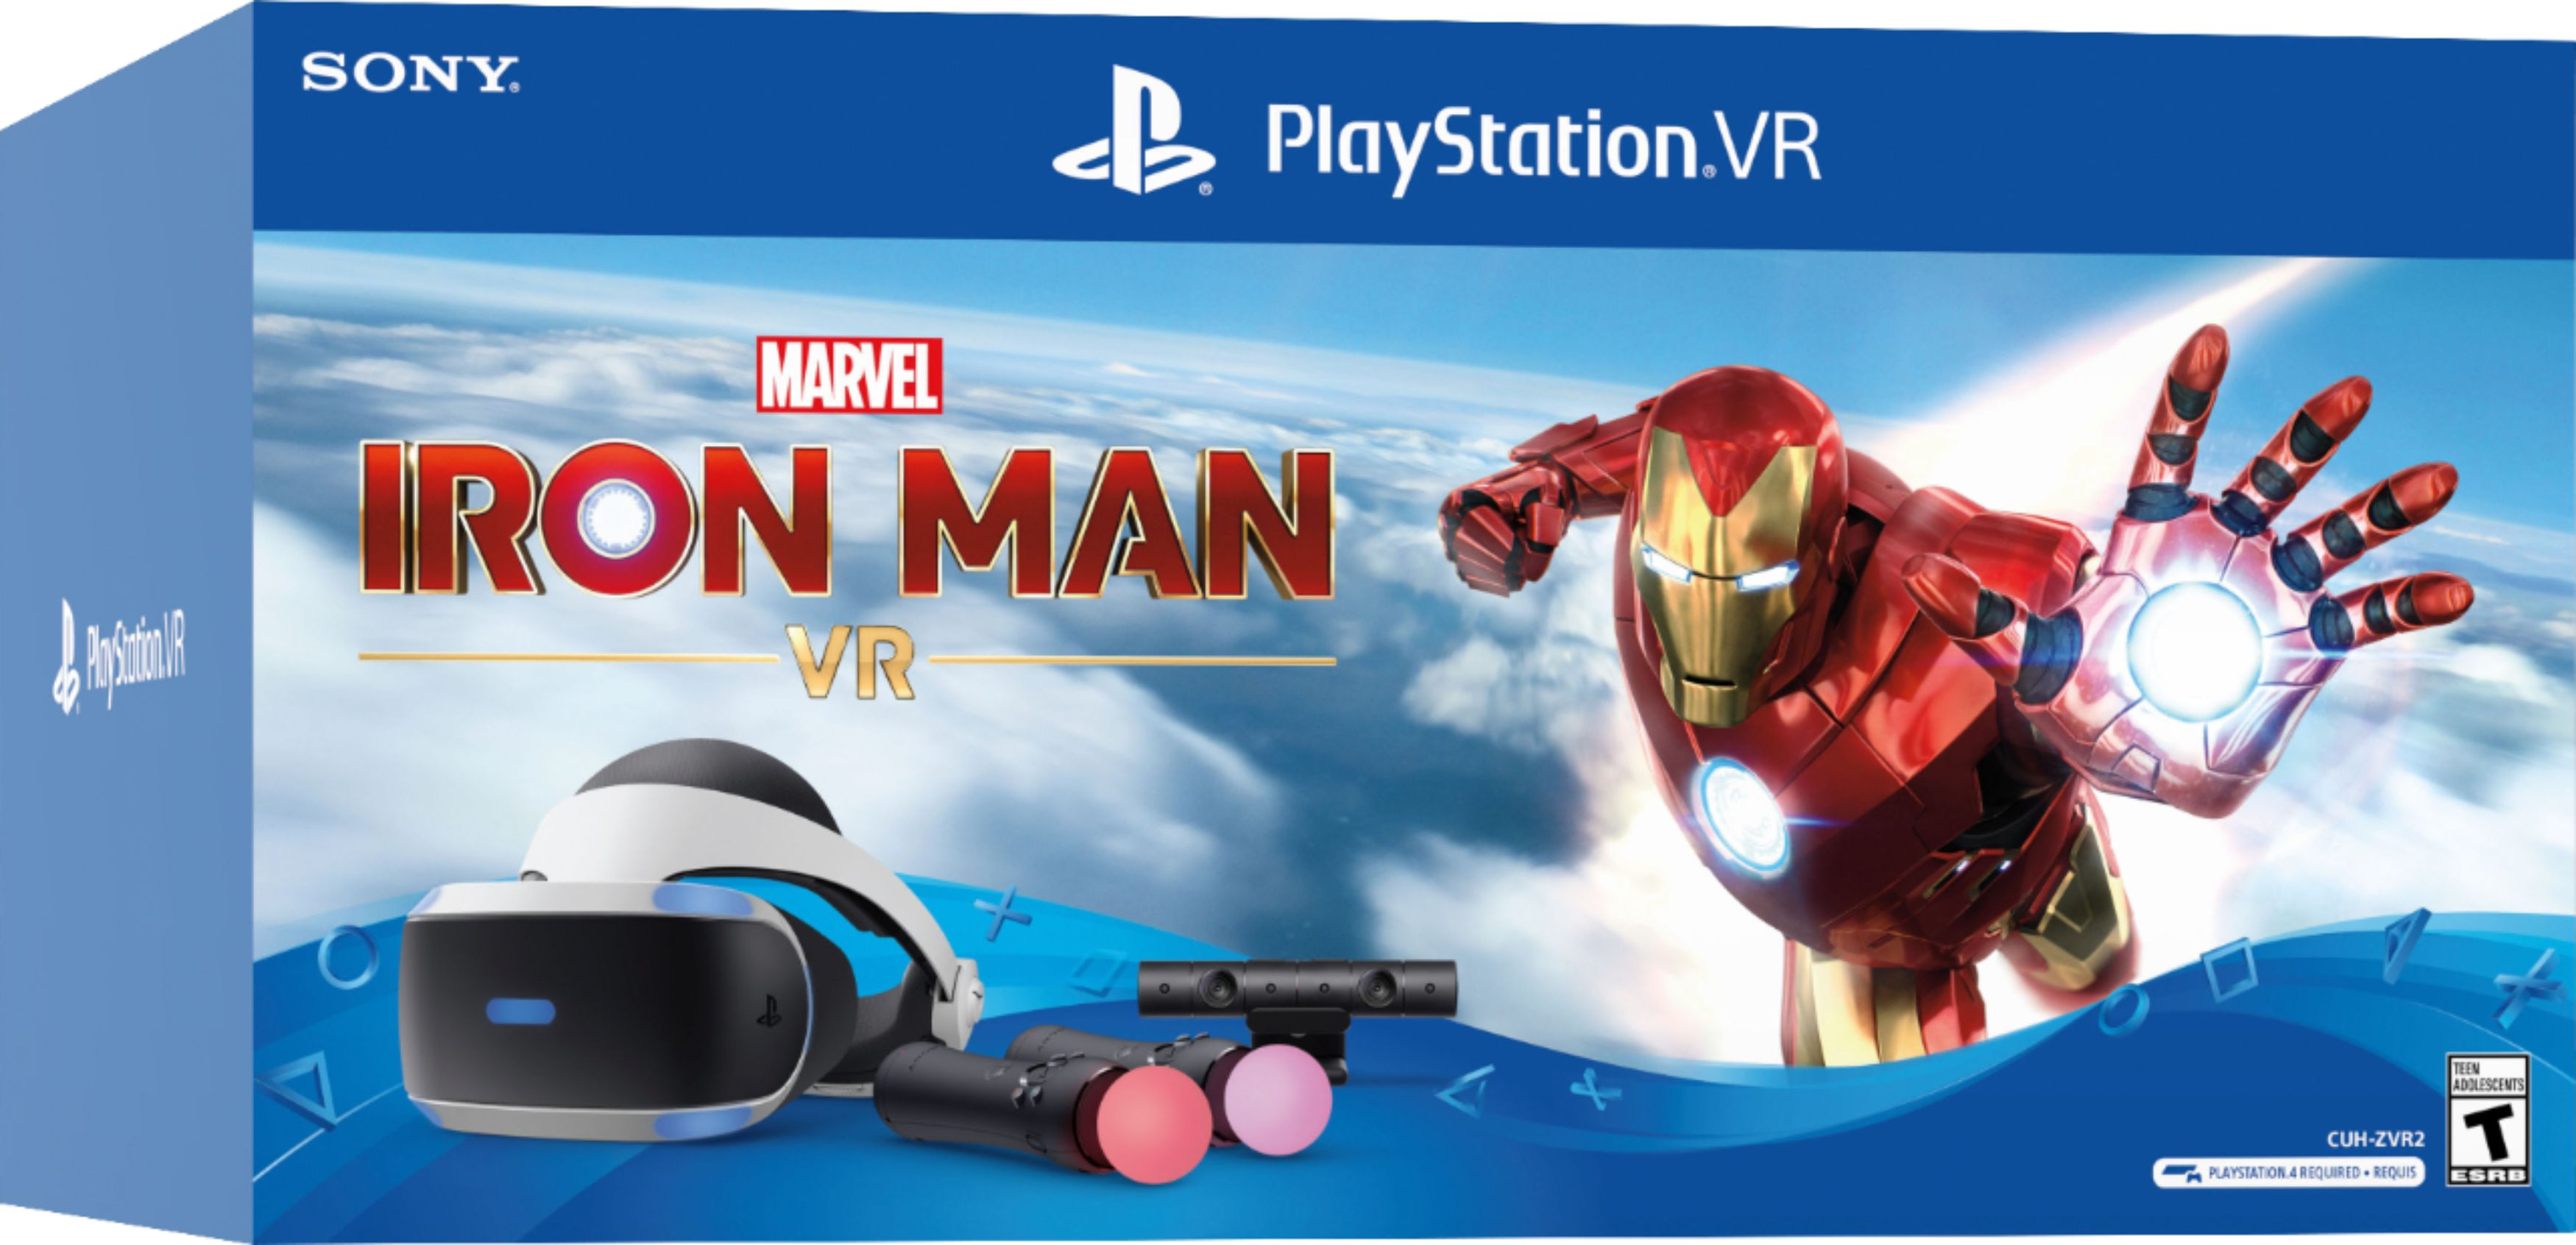 Marvel S Iron Man Vr Playstation Vr Bundle Is Available Now Playstation When You Need It